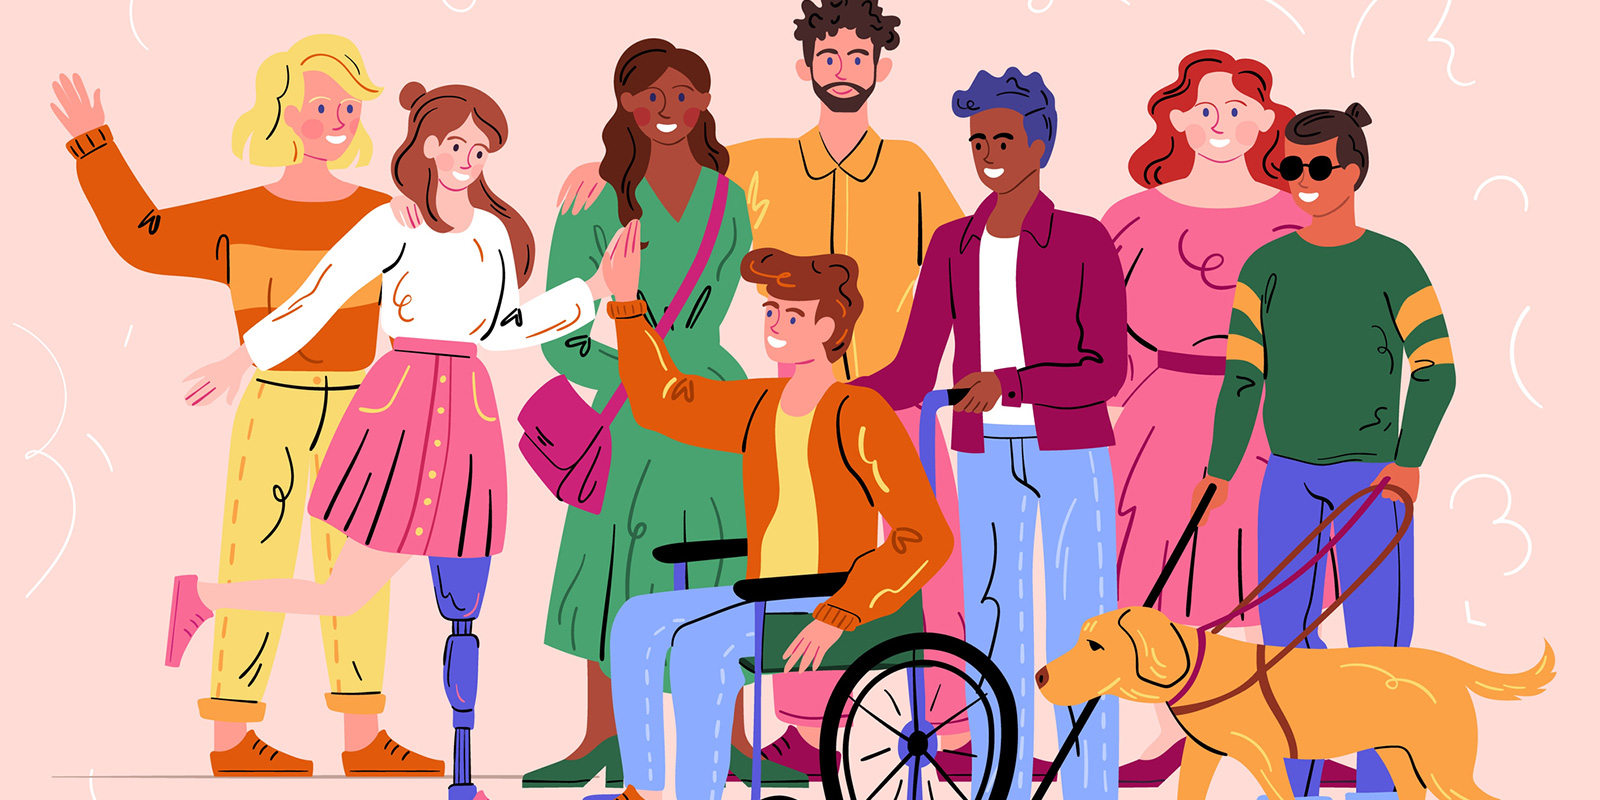 Animated group of diverse people